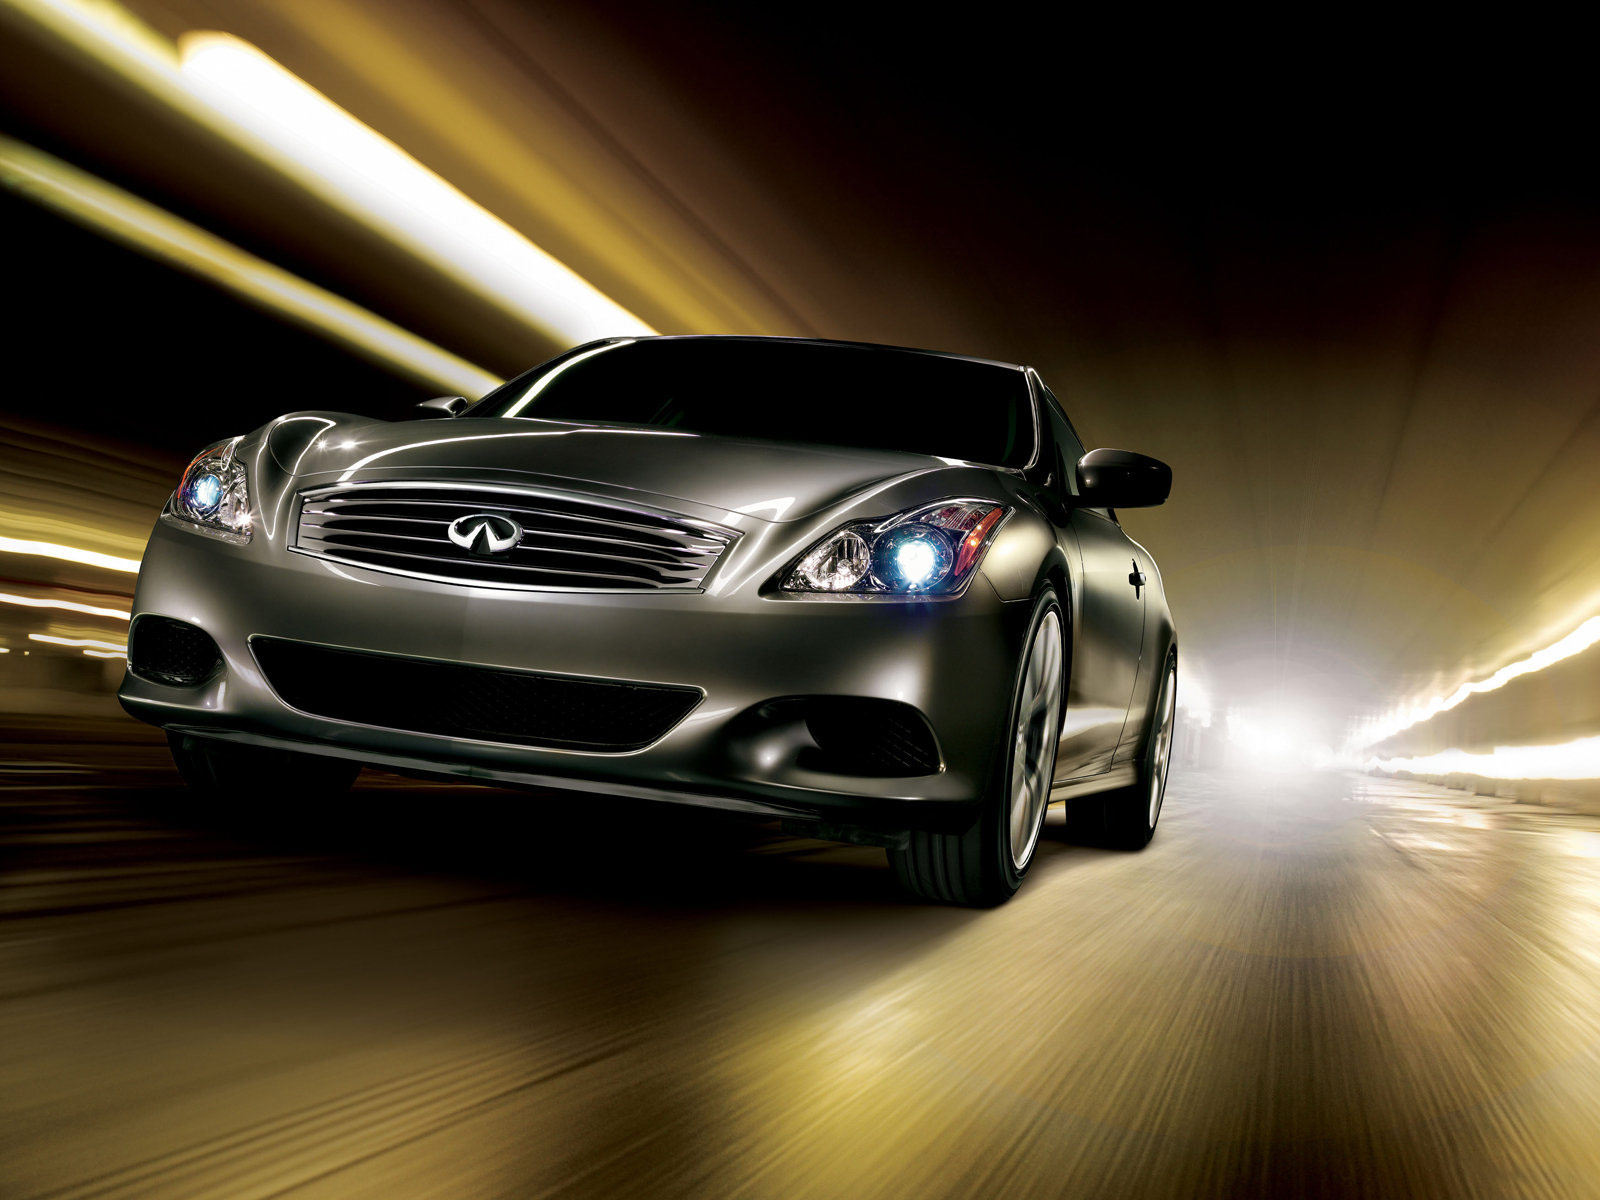 Infiniti G37 Coupe 1600x1200 Download Hd Wallpaper Wallpapertip